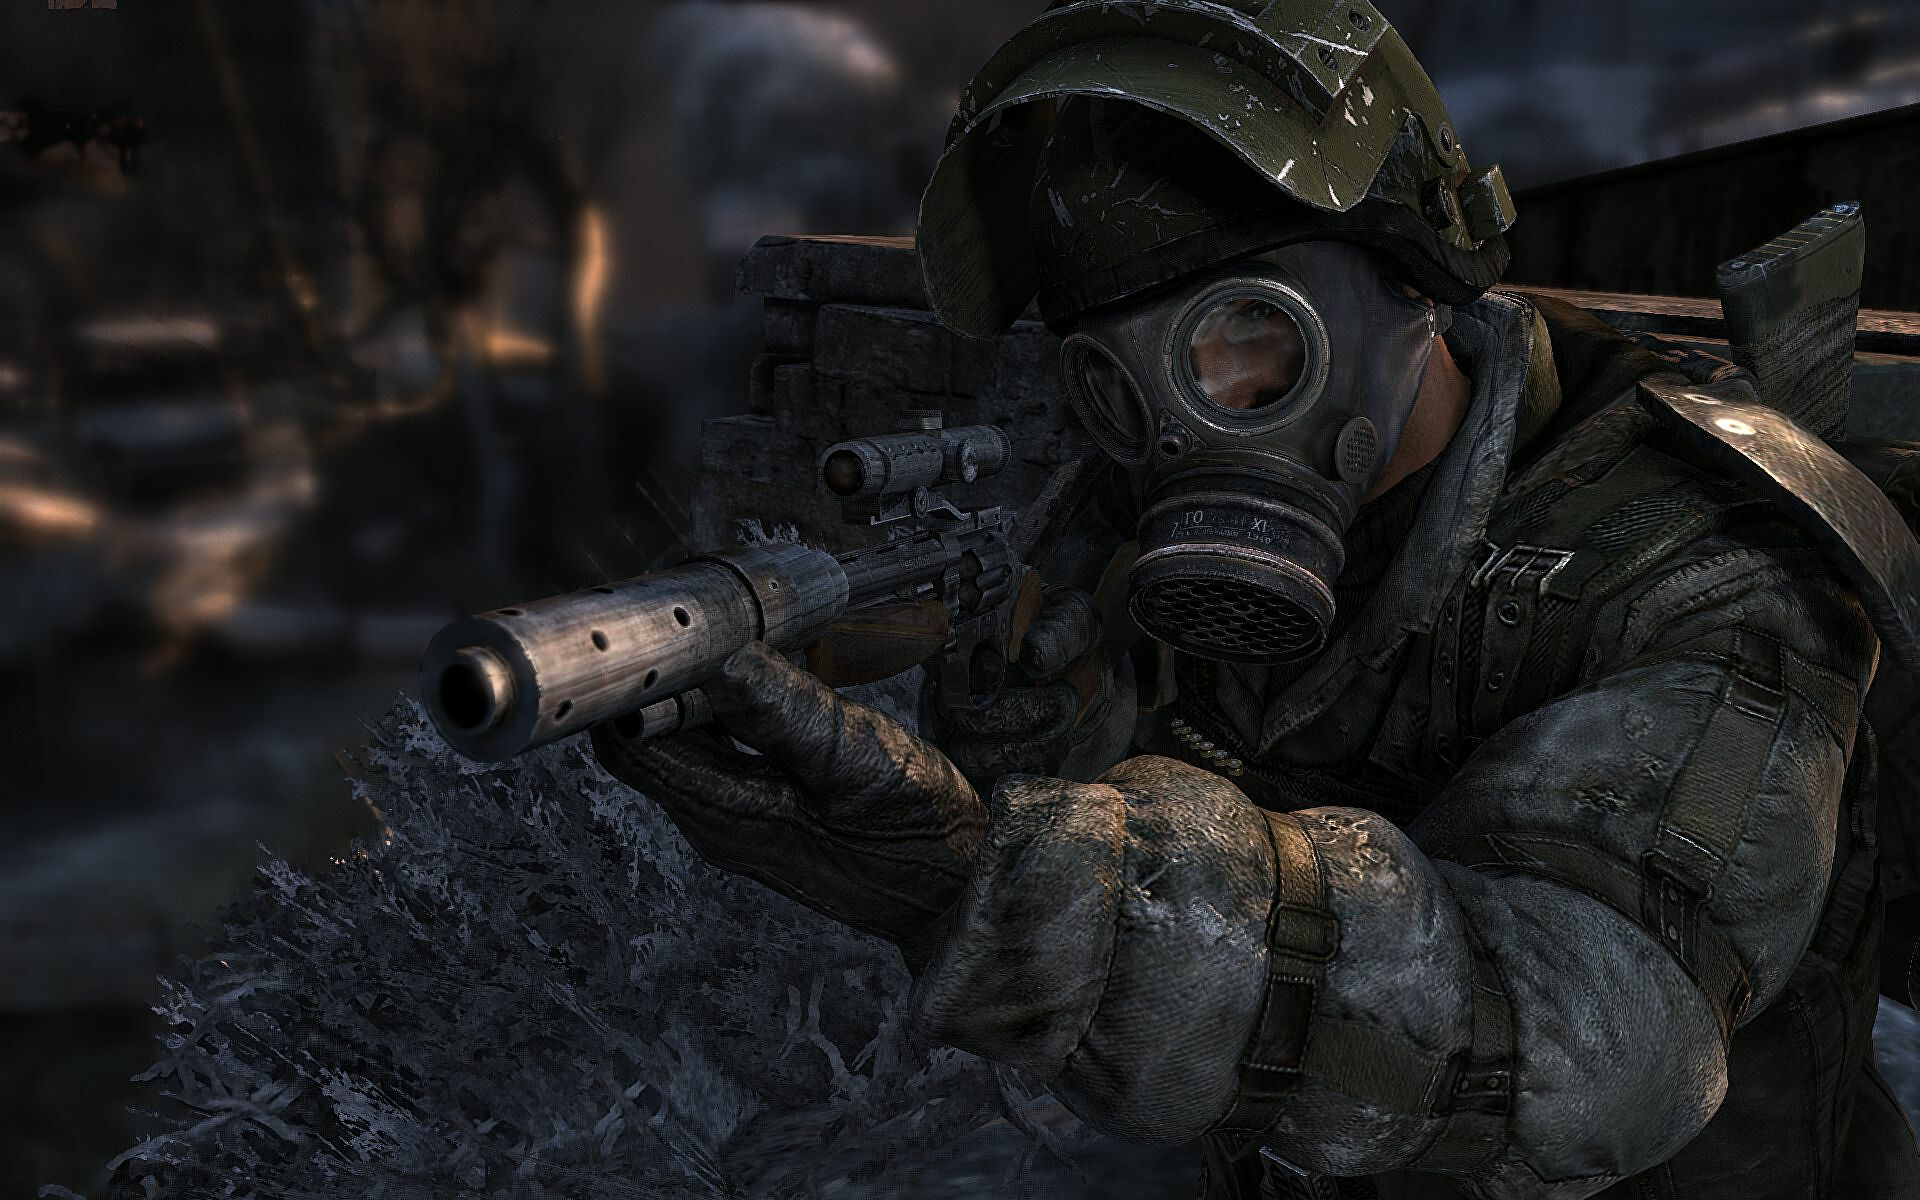 Metro 2033 is free to keep on Steam right now